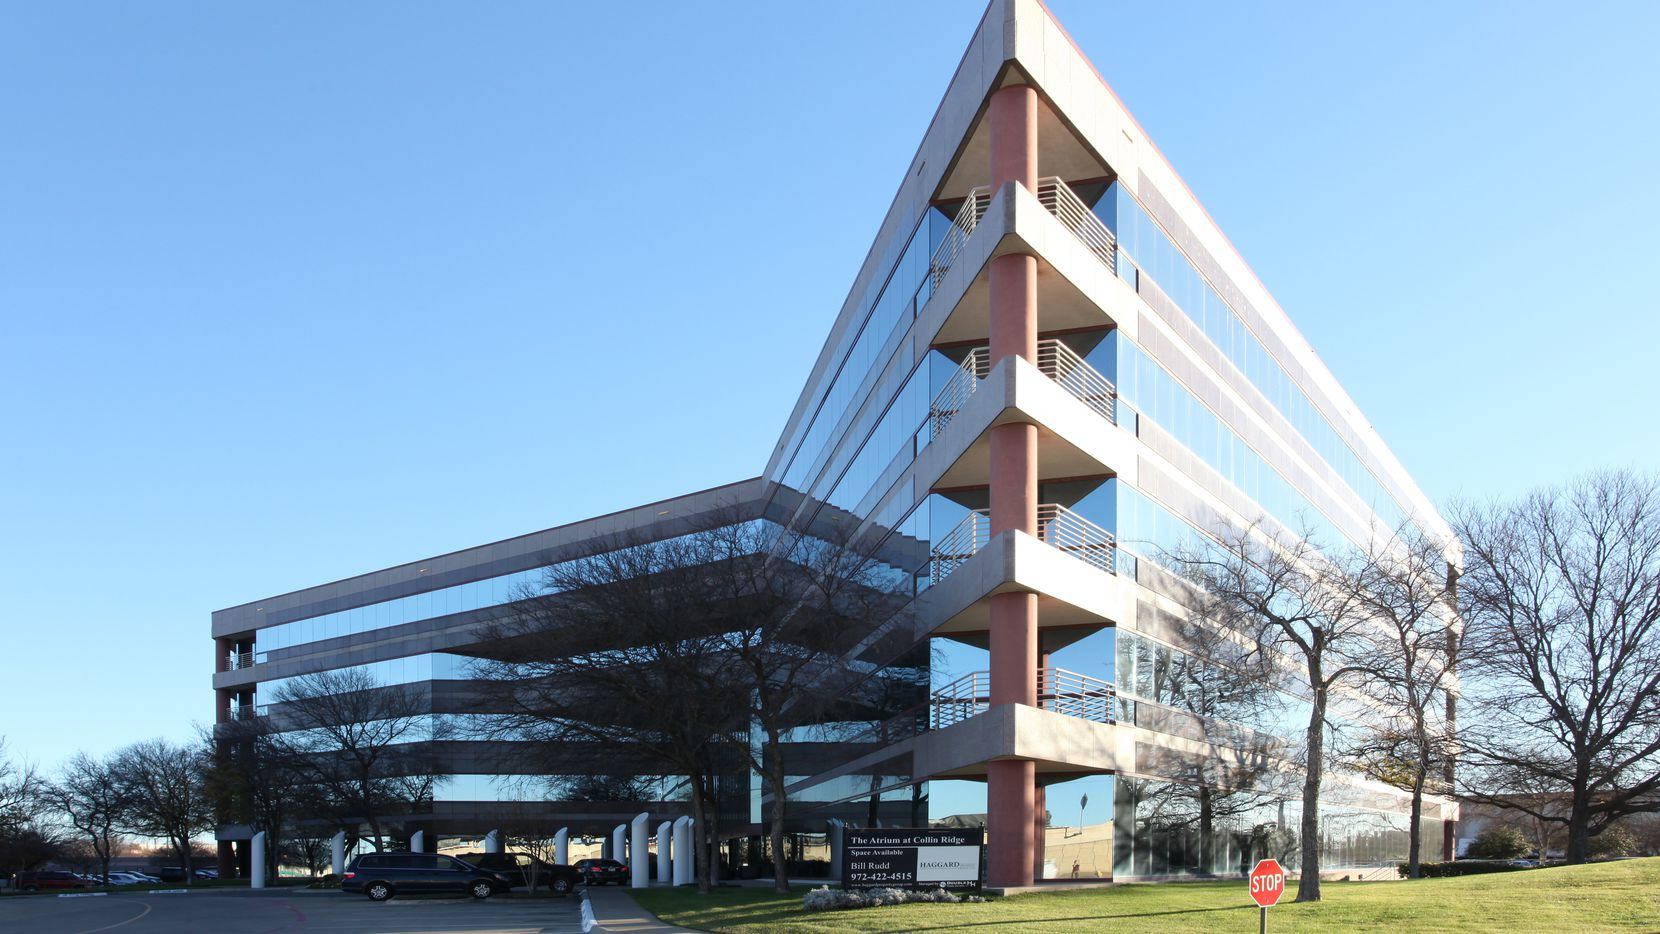 CityCentral has leased more than 30,000 square feet in the Central Five Hundred office building on U.S. Highway 75 in Plano.